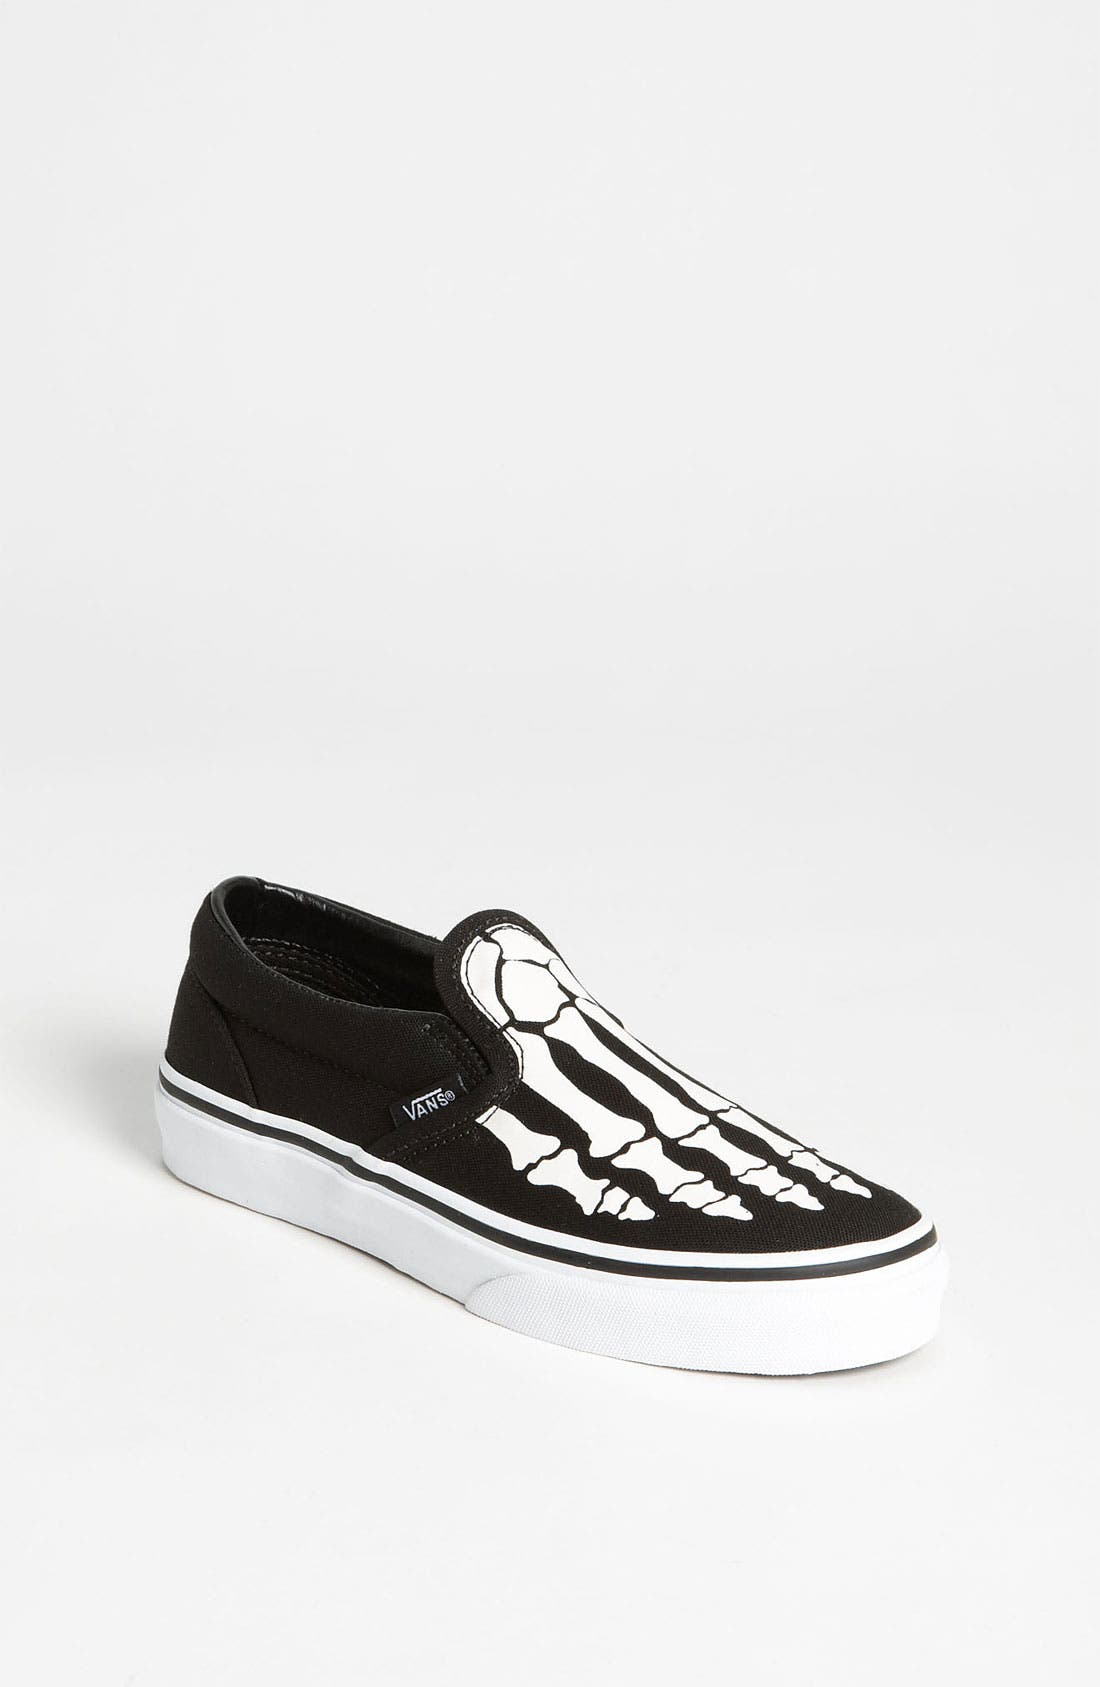 Alternate Image 1 Selected - Vans 'Classic - Glow In the Dark' Slip-On (Toddler, Little Kid & Big Kid)